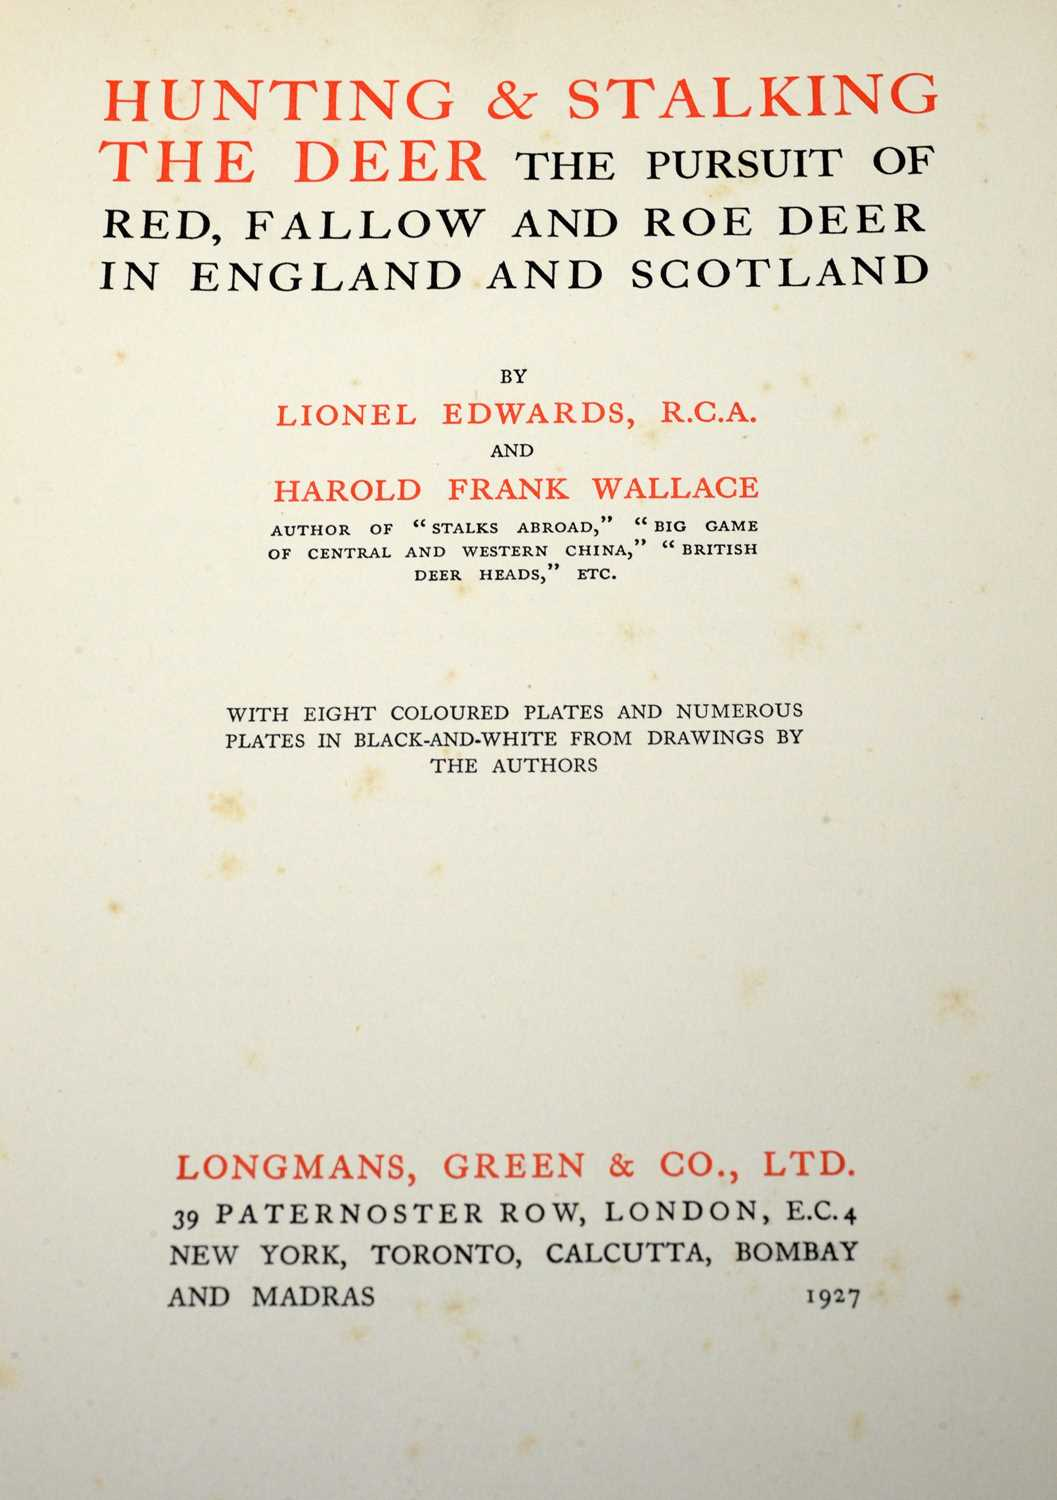 Edwards (Lionel) and Wallace (Harold Frank) Hunting & Stalking of Deer, and 2 other books - Image 3 of 5